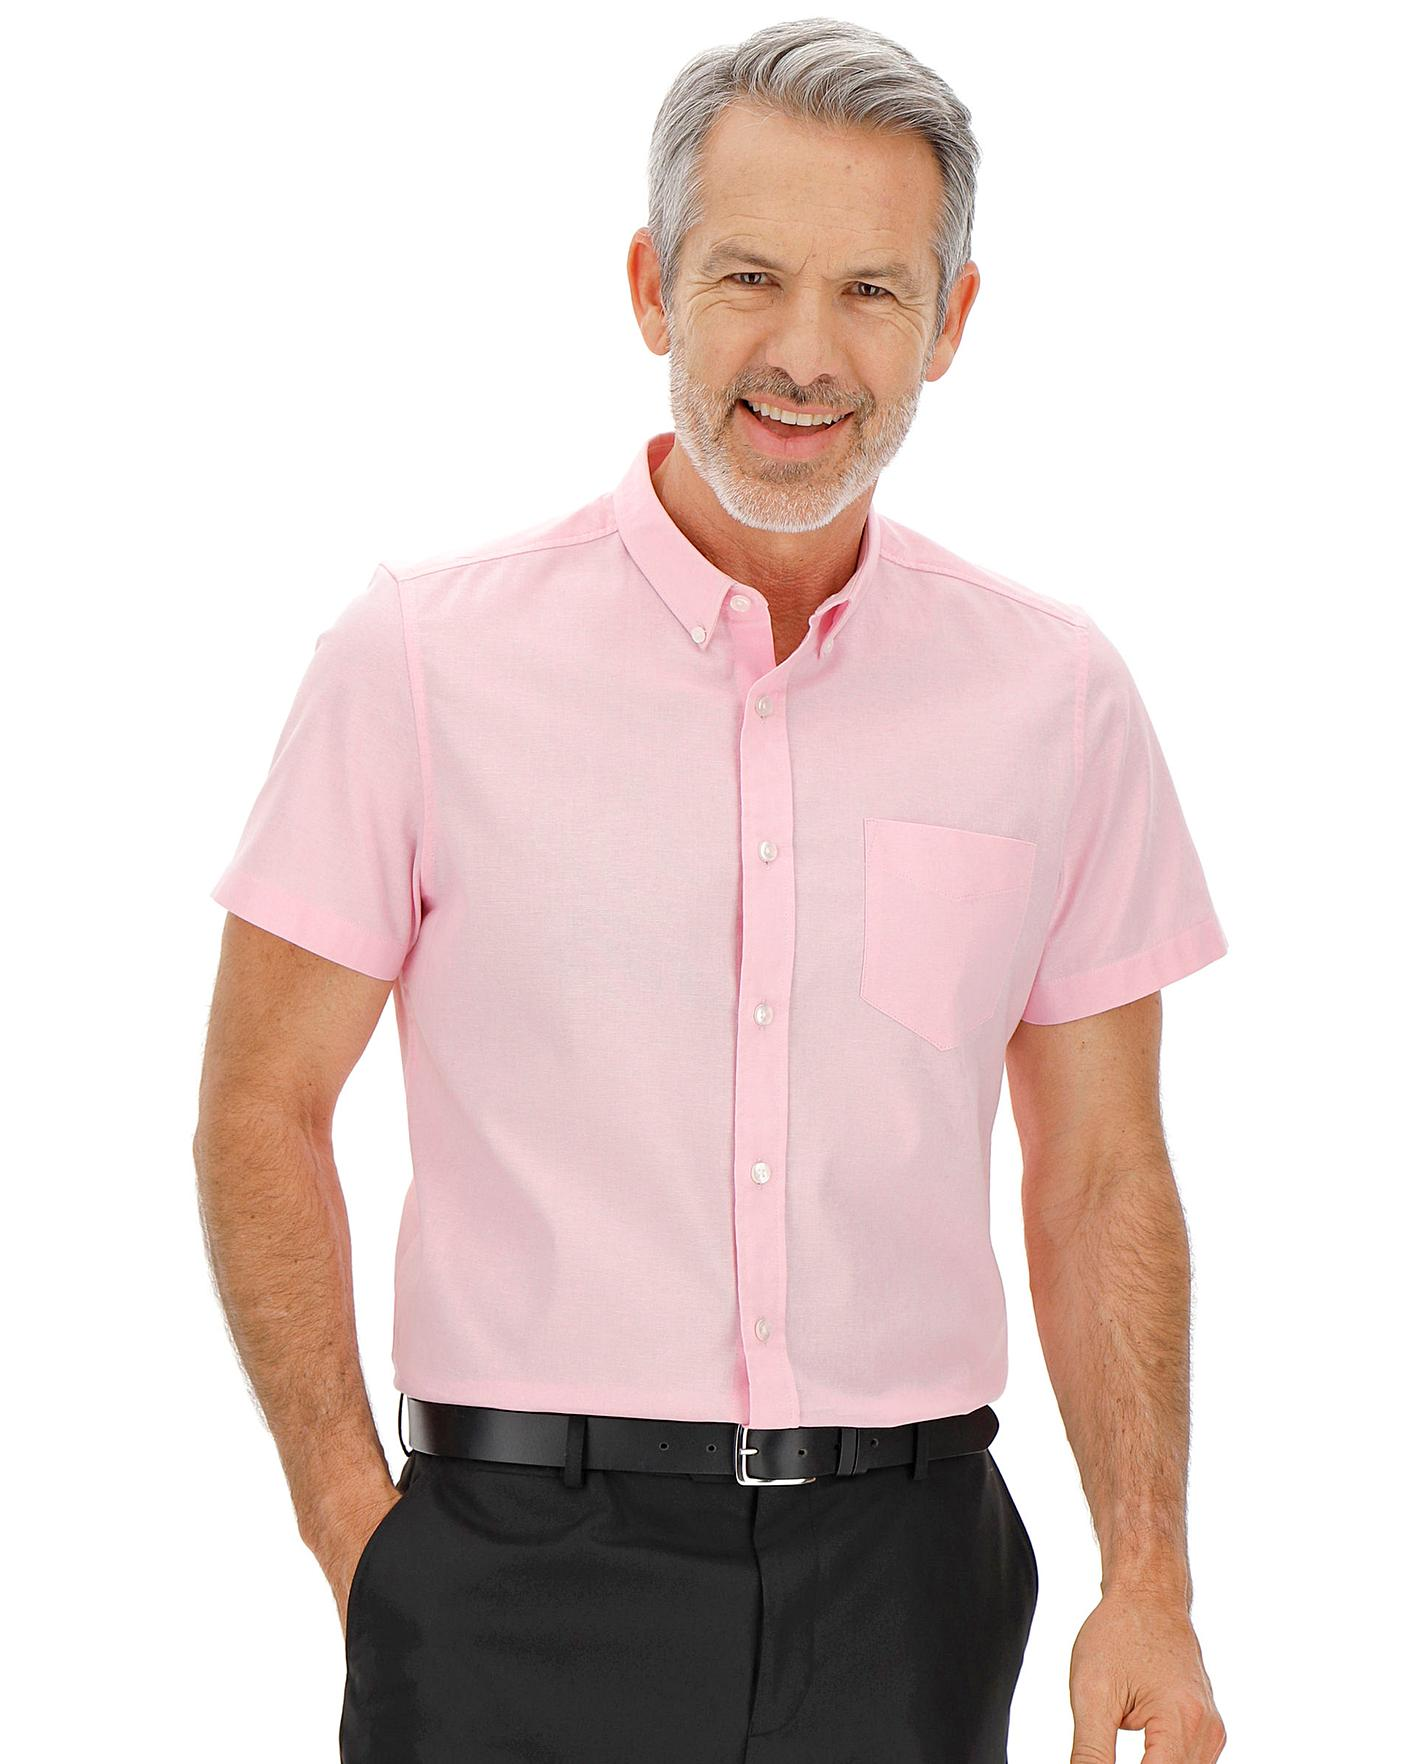 Baby Pink S Stretch Oxford Shirt Long